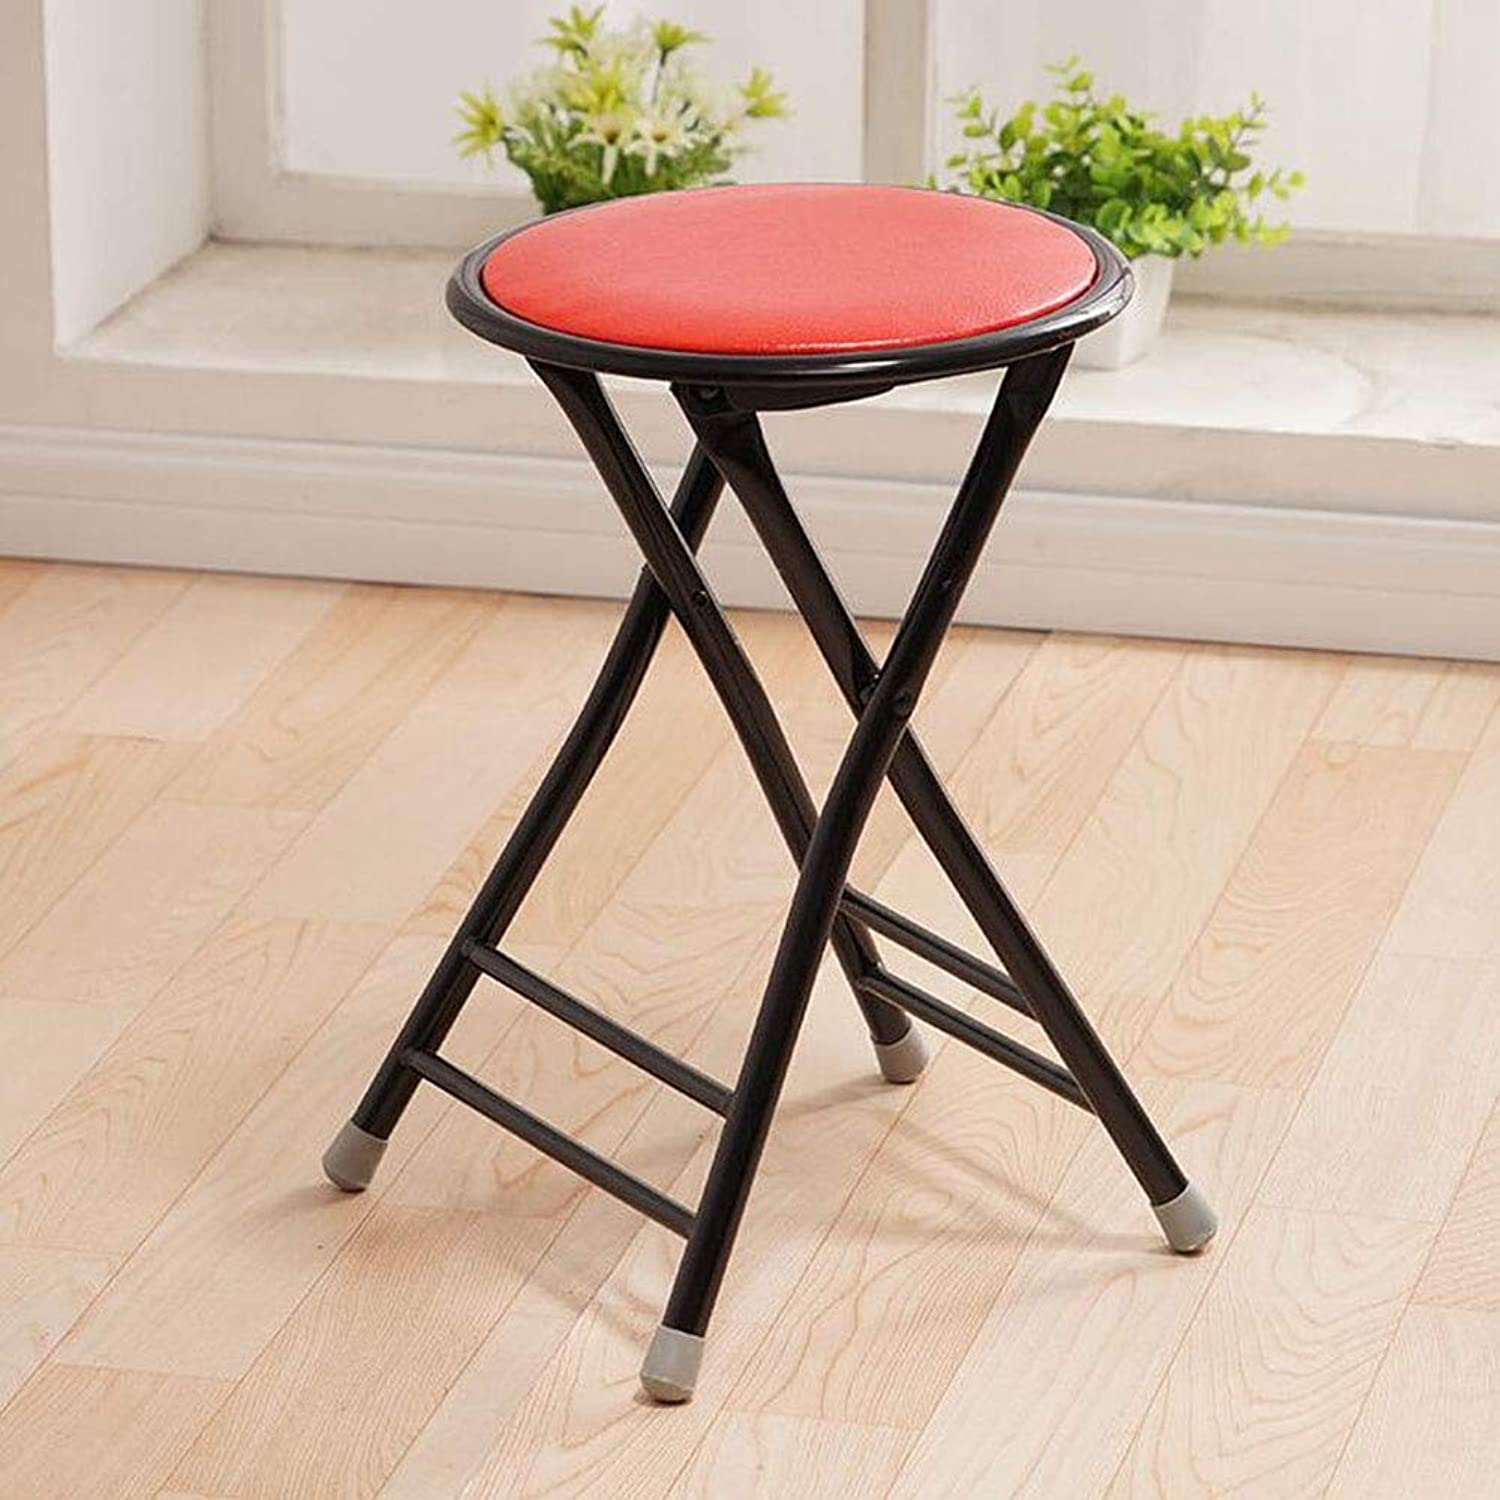 Folding Chair, Reinforcement Stool Fashion Simple Stool Home Dining Chair Portable Leisure Small Chair (color   A)